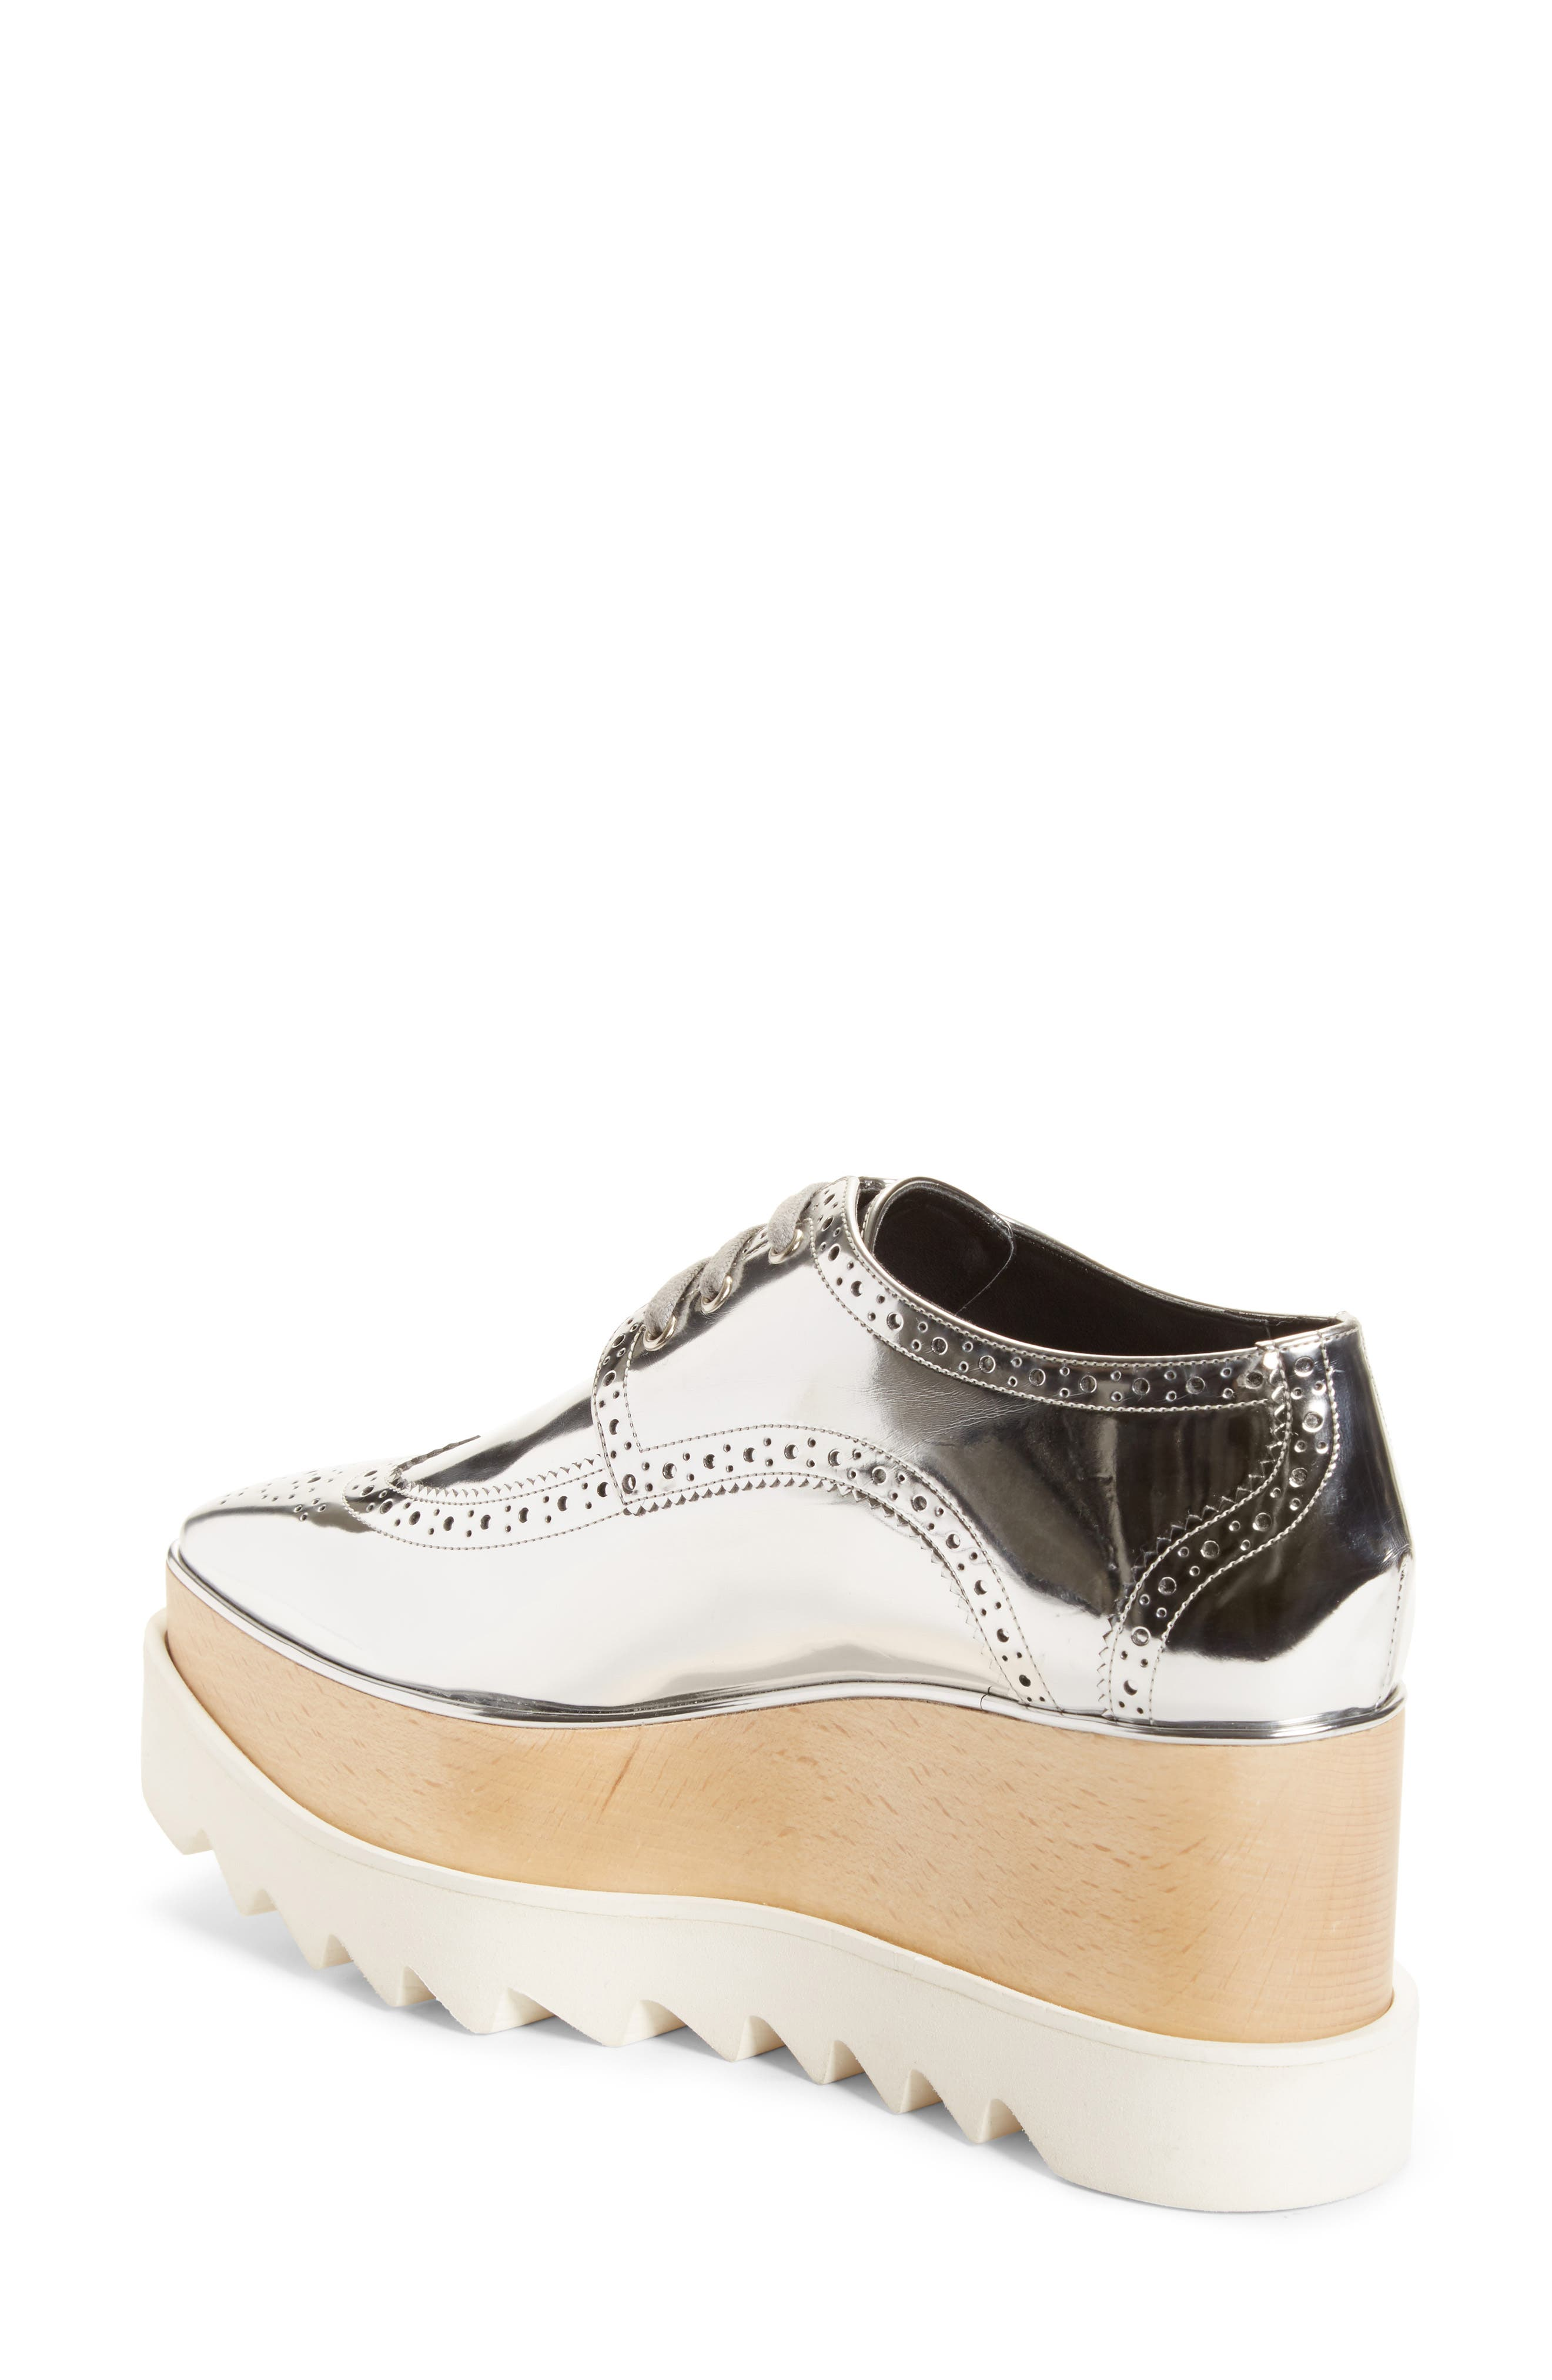 Elyse Brogue Platform Loafer,                             Alternate thumbnail 2, color,                             Metallic Silver